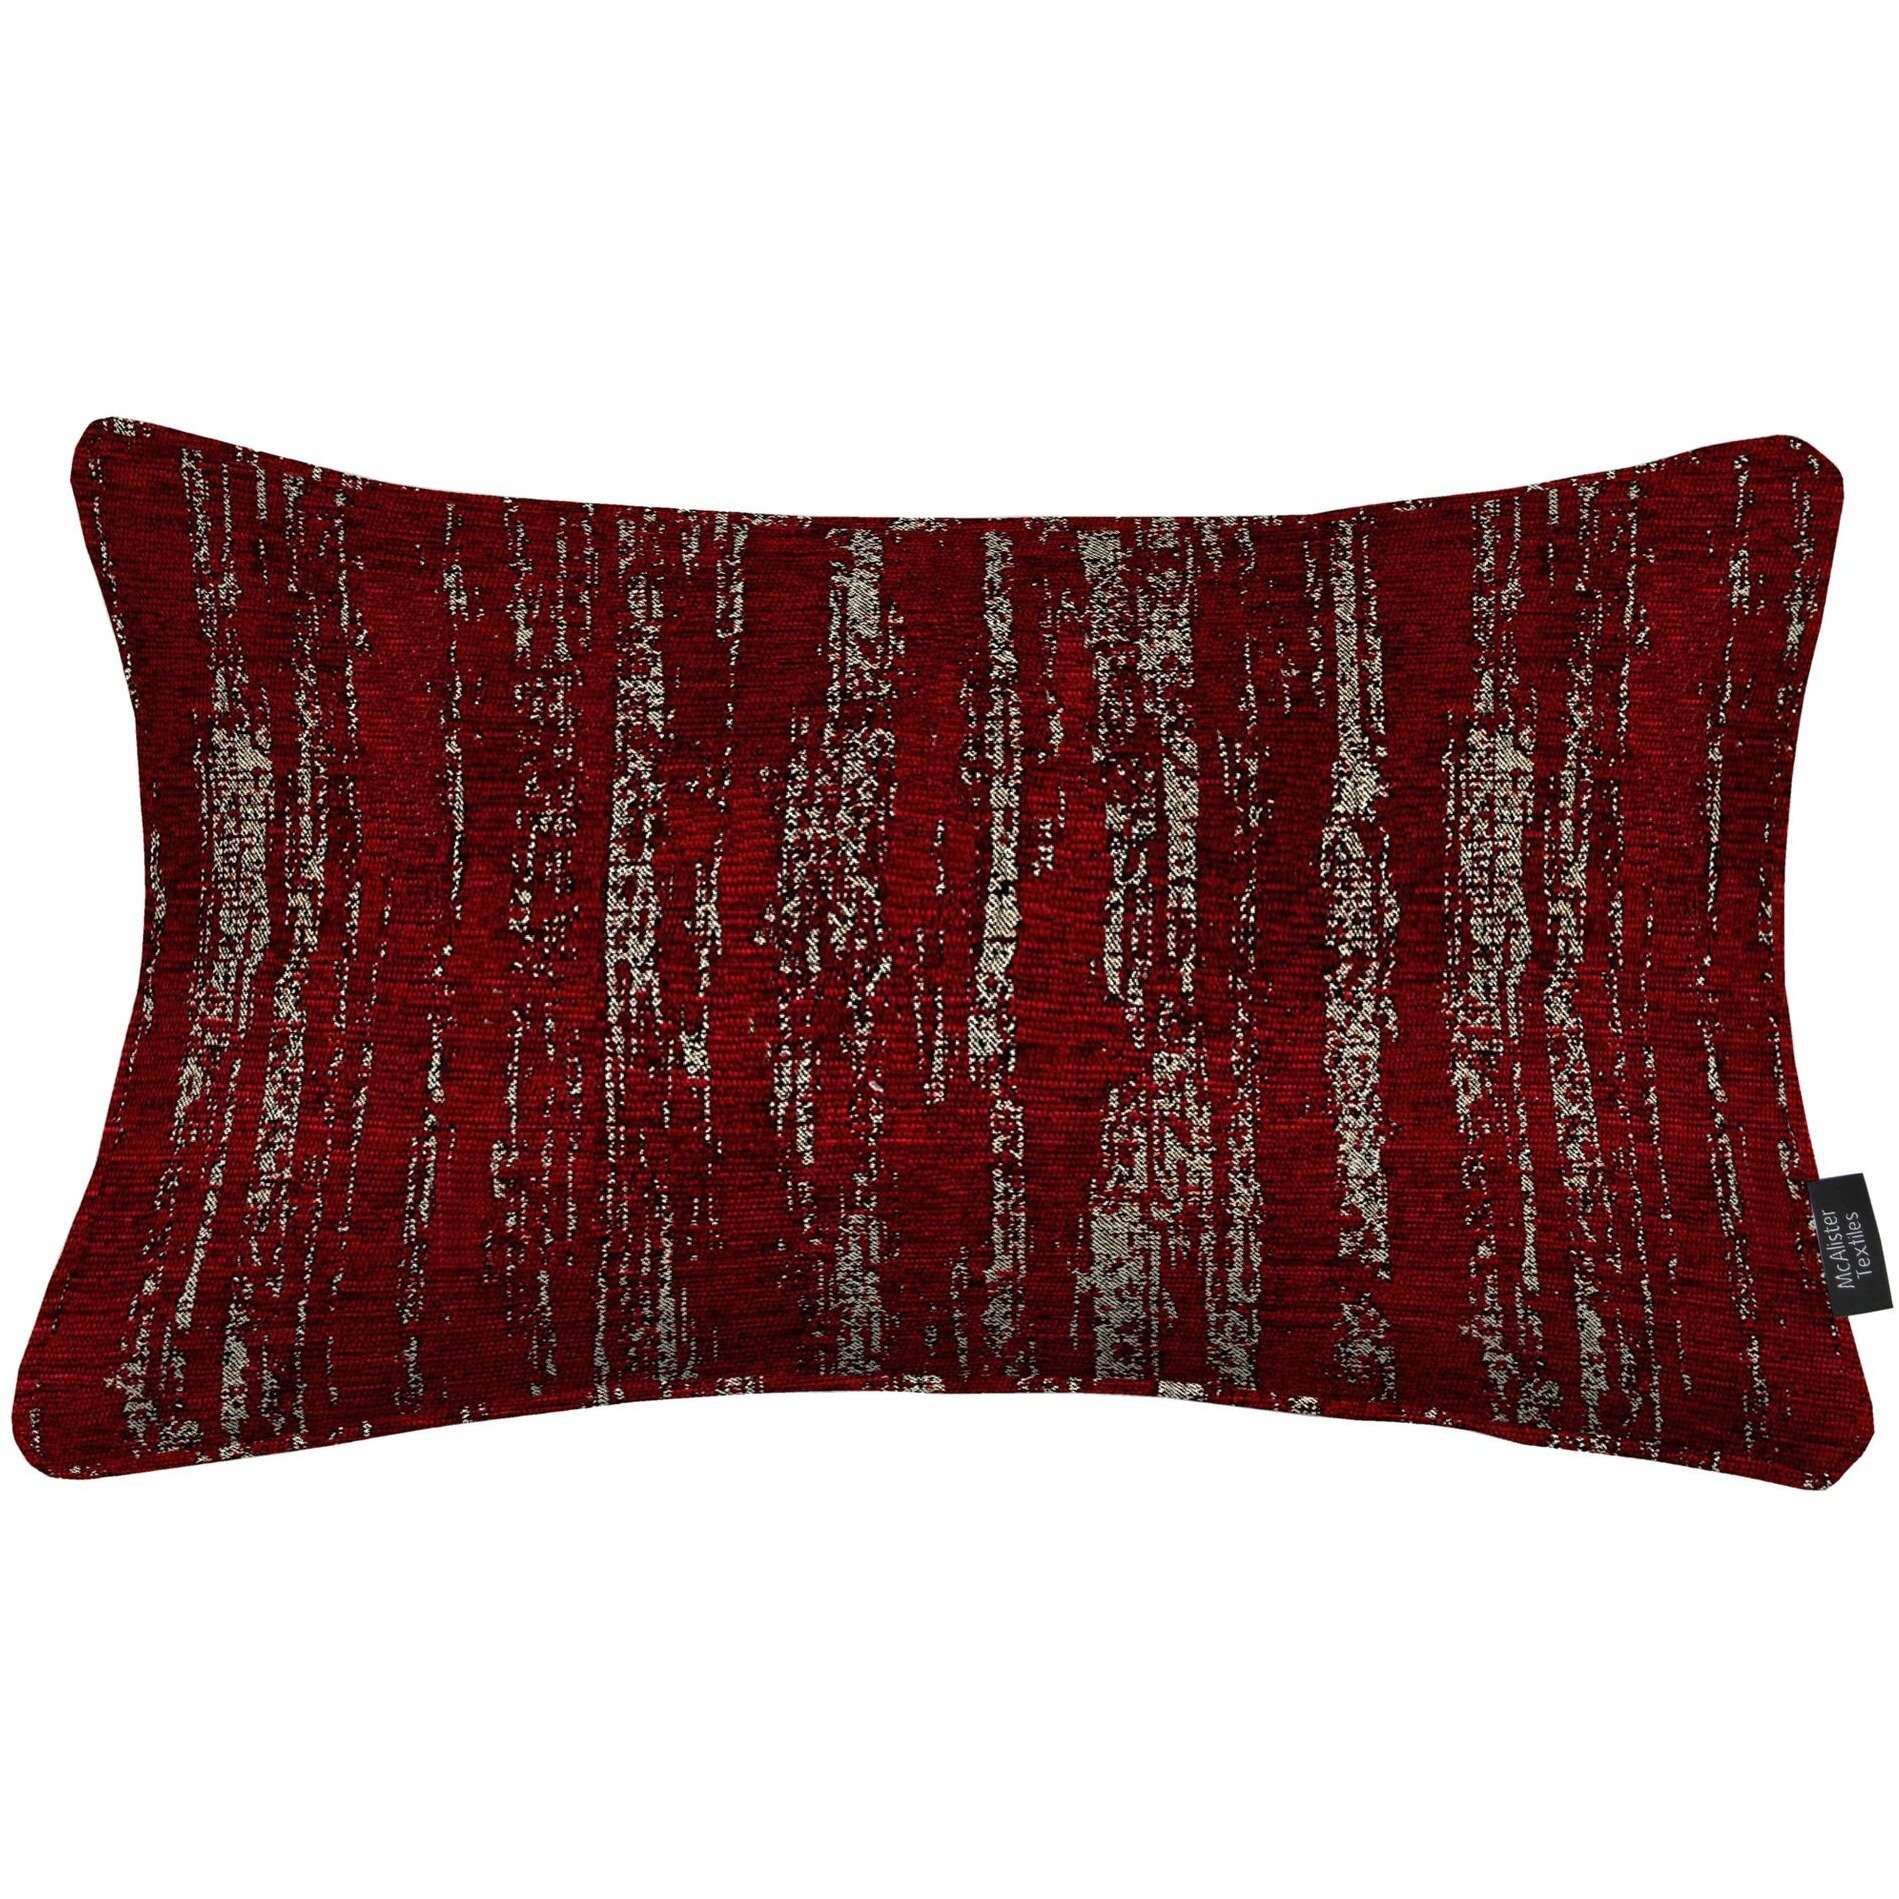 McAlister Textiles Textured Chenille Wine Red Cushion Cushions and Covers Cover Only 50cm x 30cm